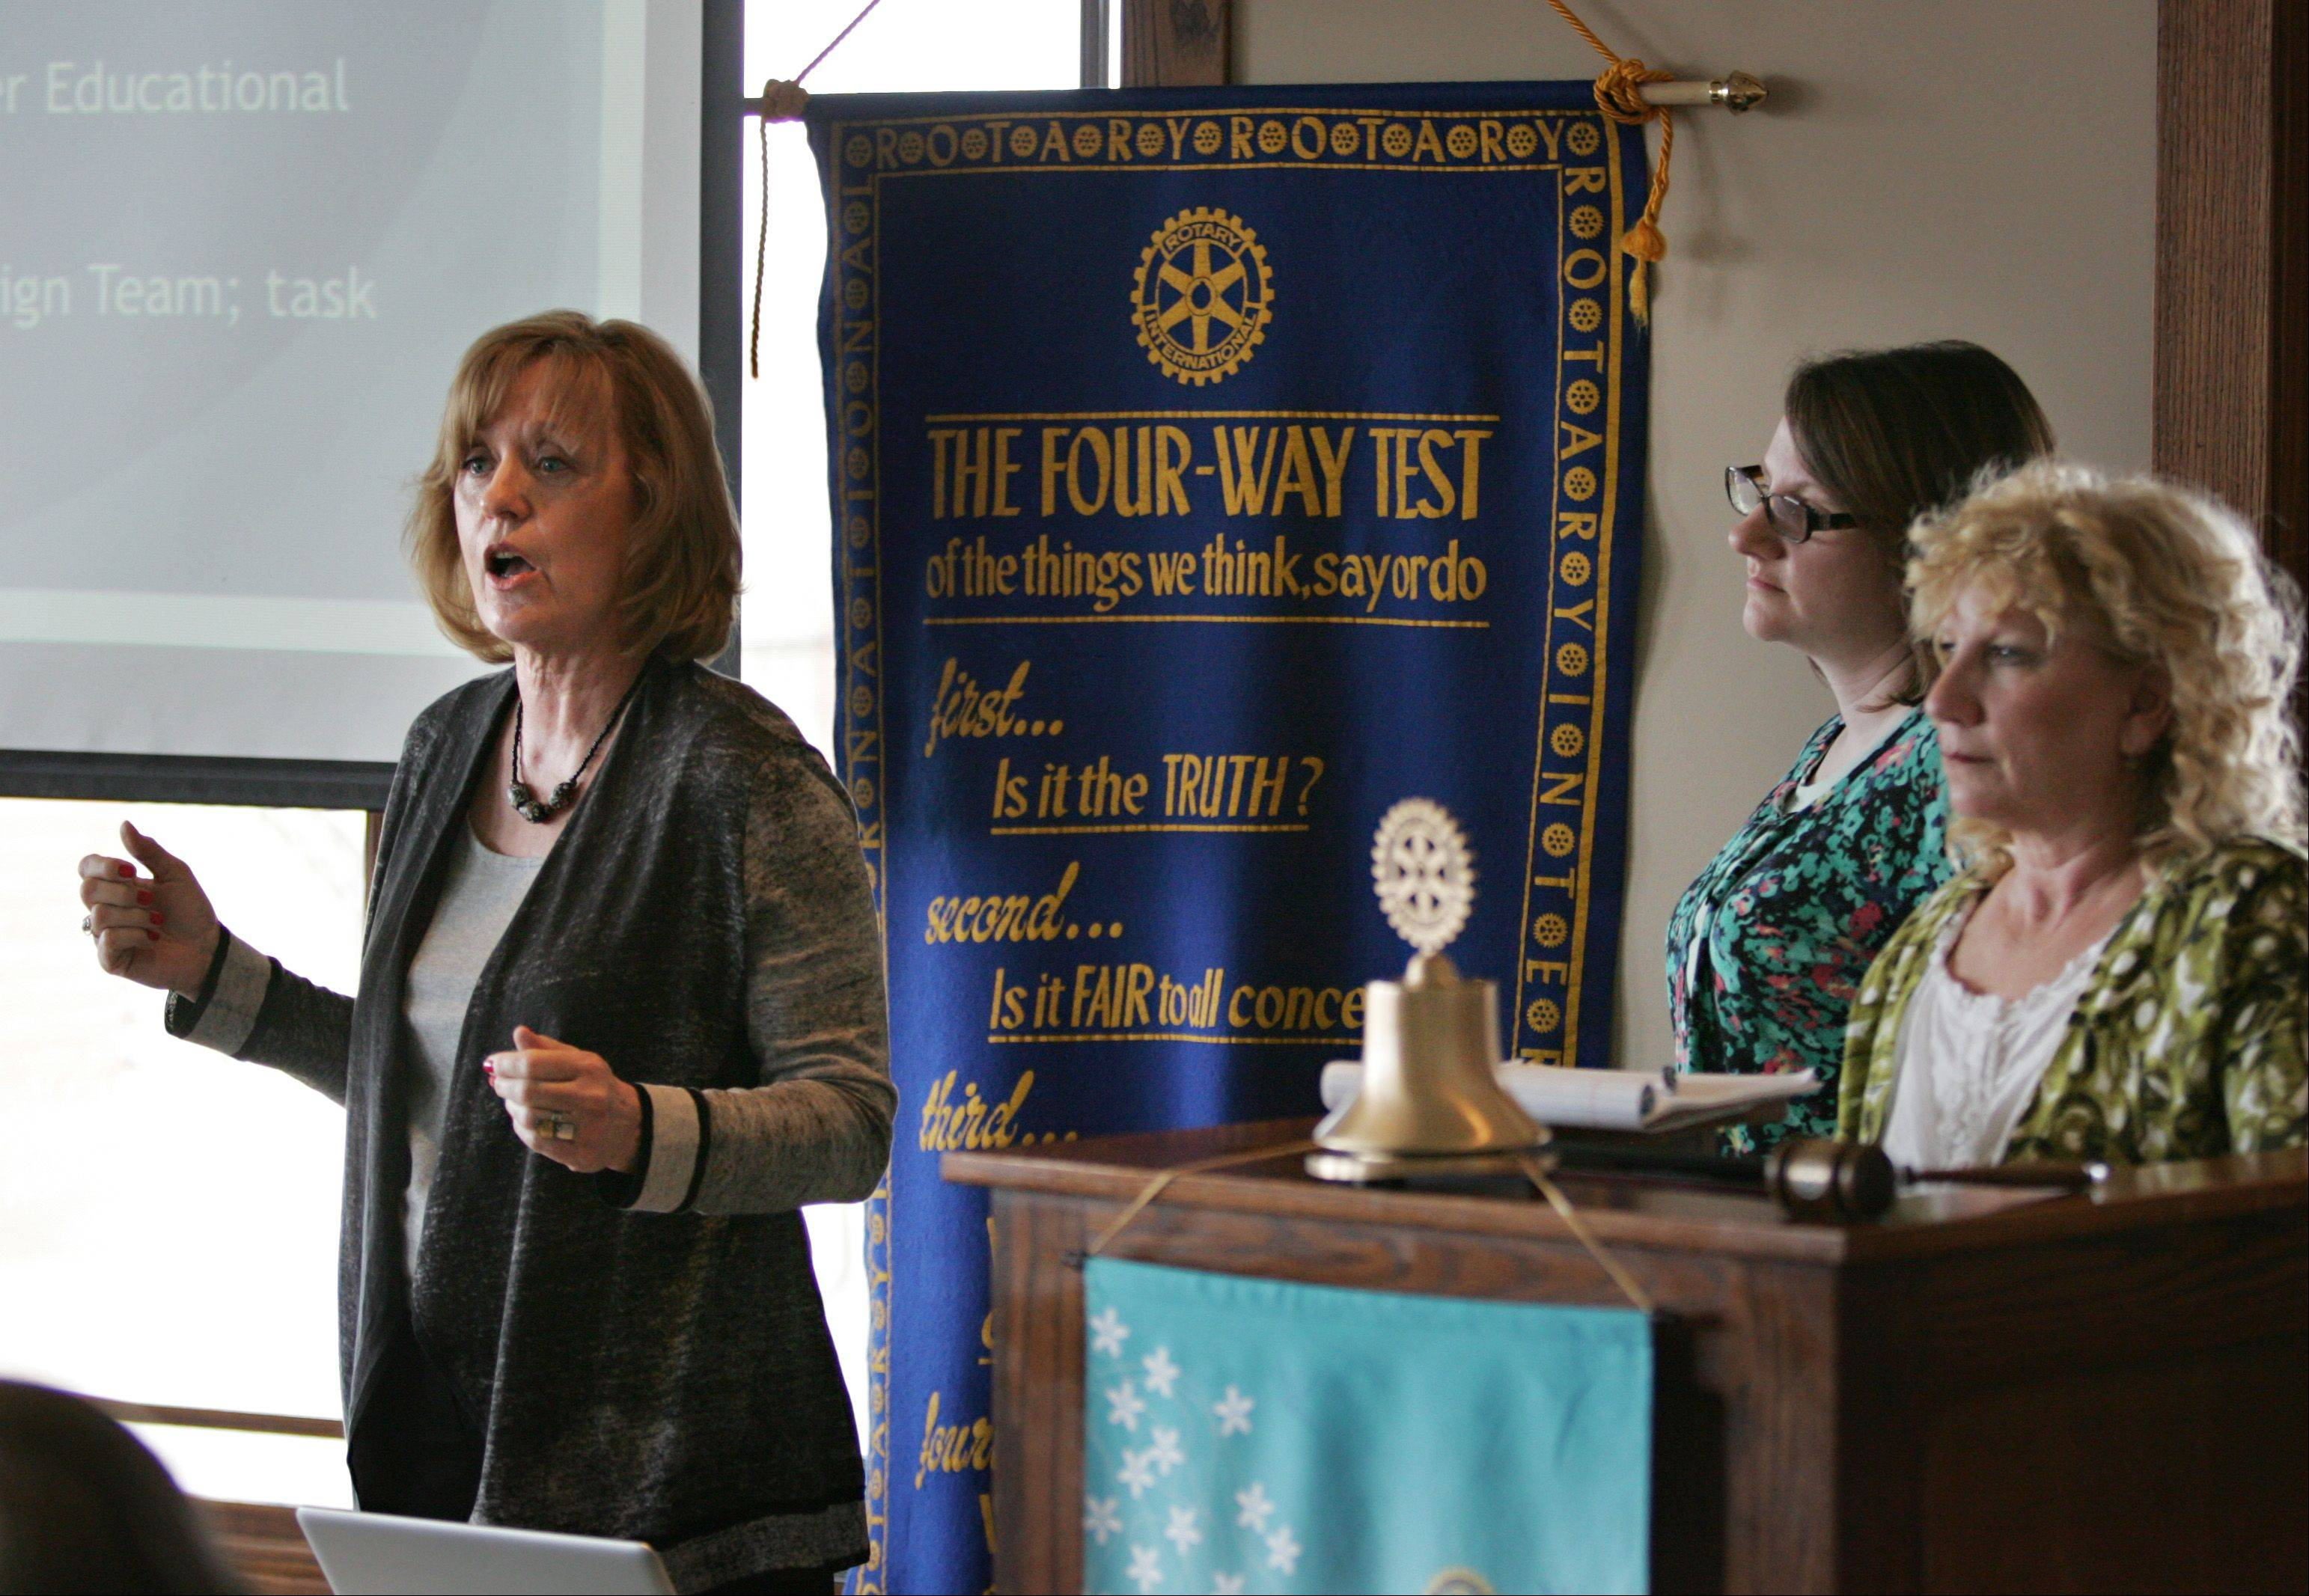 Karen Schock of the Elgin Charter School Initiative talks to members of the Elgin Noon Rotary Club in April about the group's vision for a charter school serving the Elgin area. Also pictured are Kari White, center, and Krissy Palermo, right.